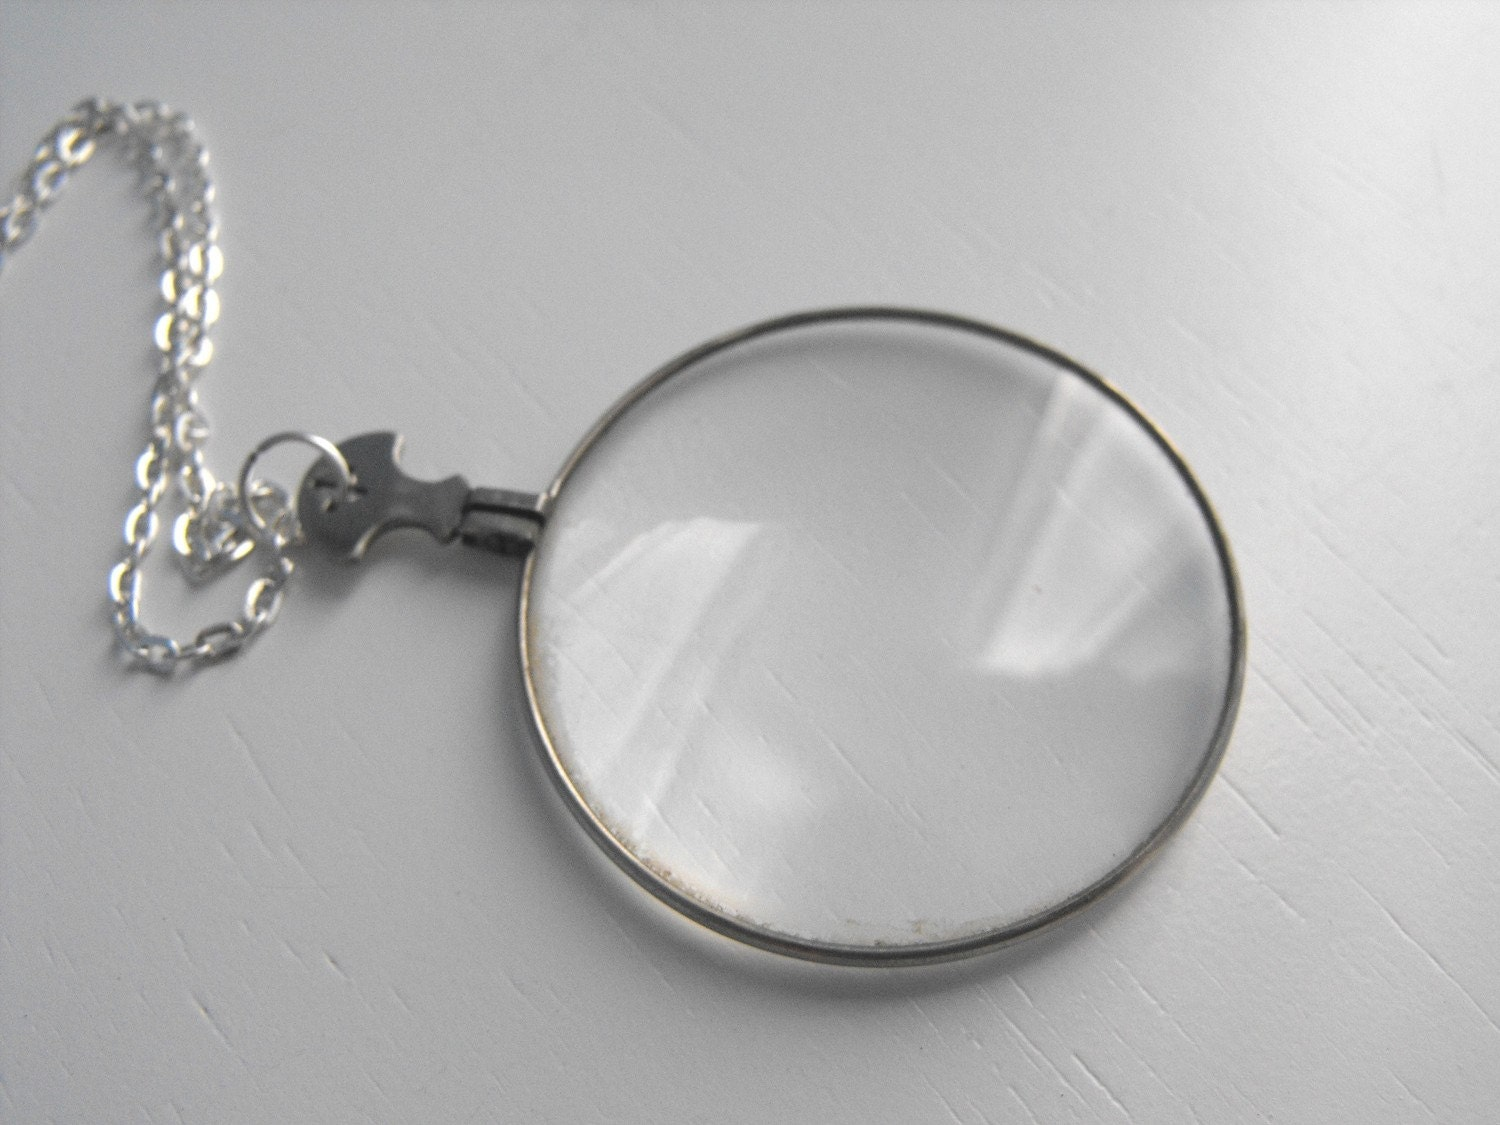 Vinatage Glass Monocle Necklace With Silver Chain